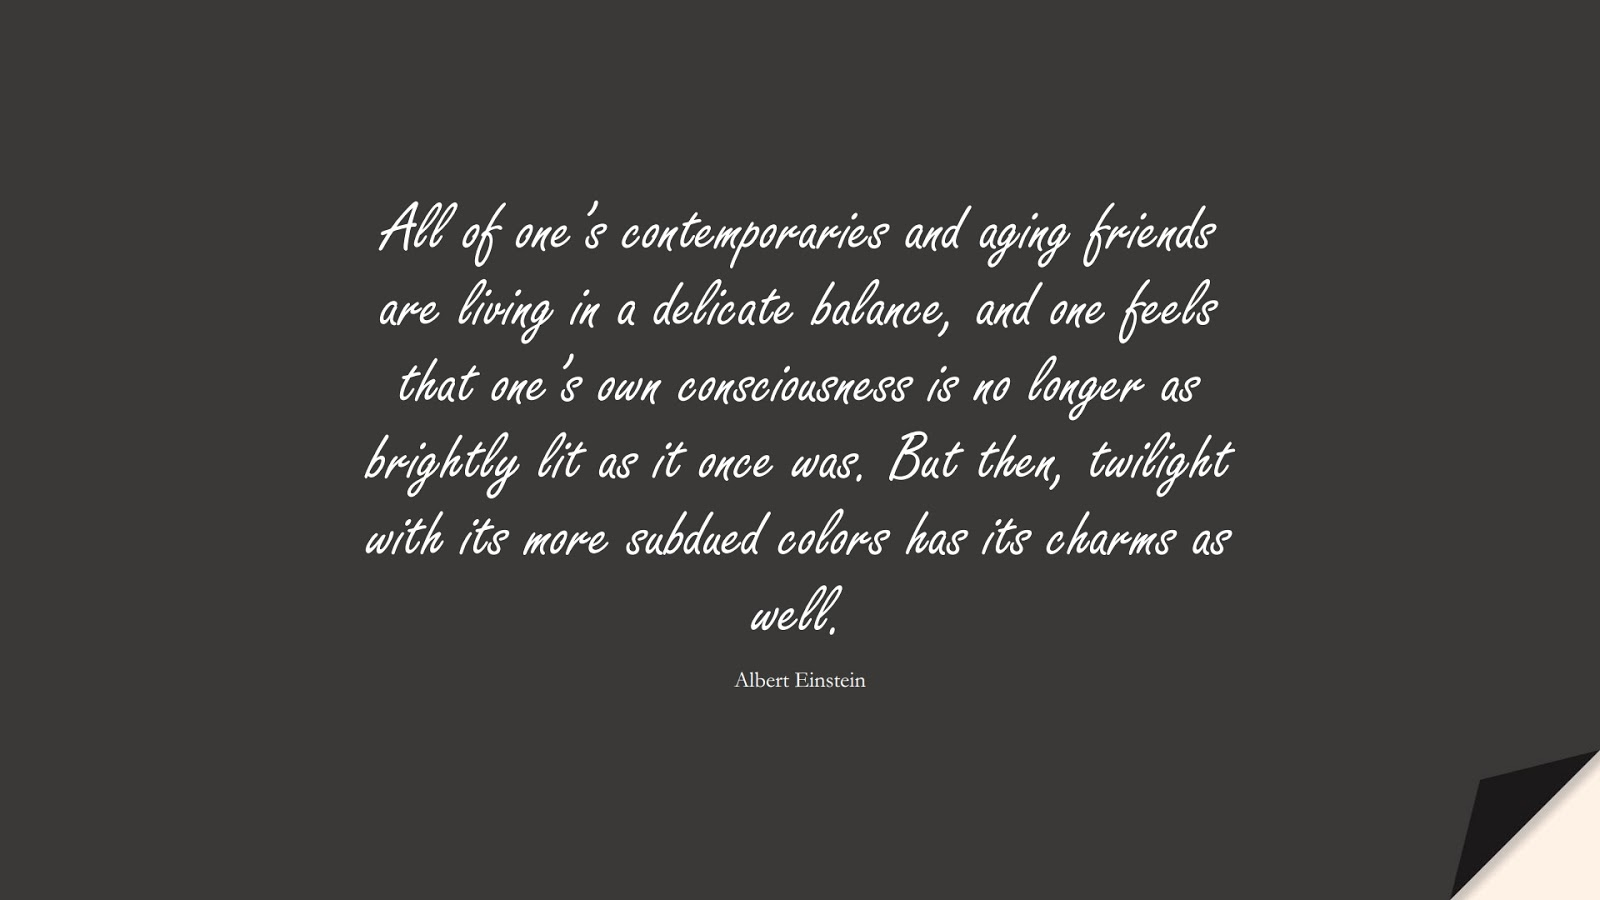 All of one's contemporaries and aging friends are living in a delicate balance, and one feels that one's own consciousness is no longer as brightly lit as it once was. But then, twilight with its more subdued colors has its charms as well. (Albert Einstein);  #AlbertEnsteinQuotes